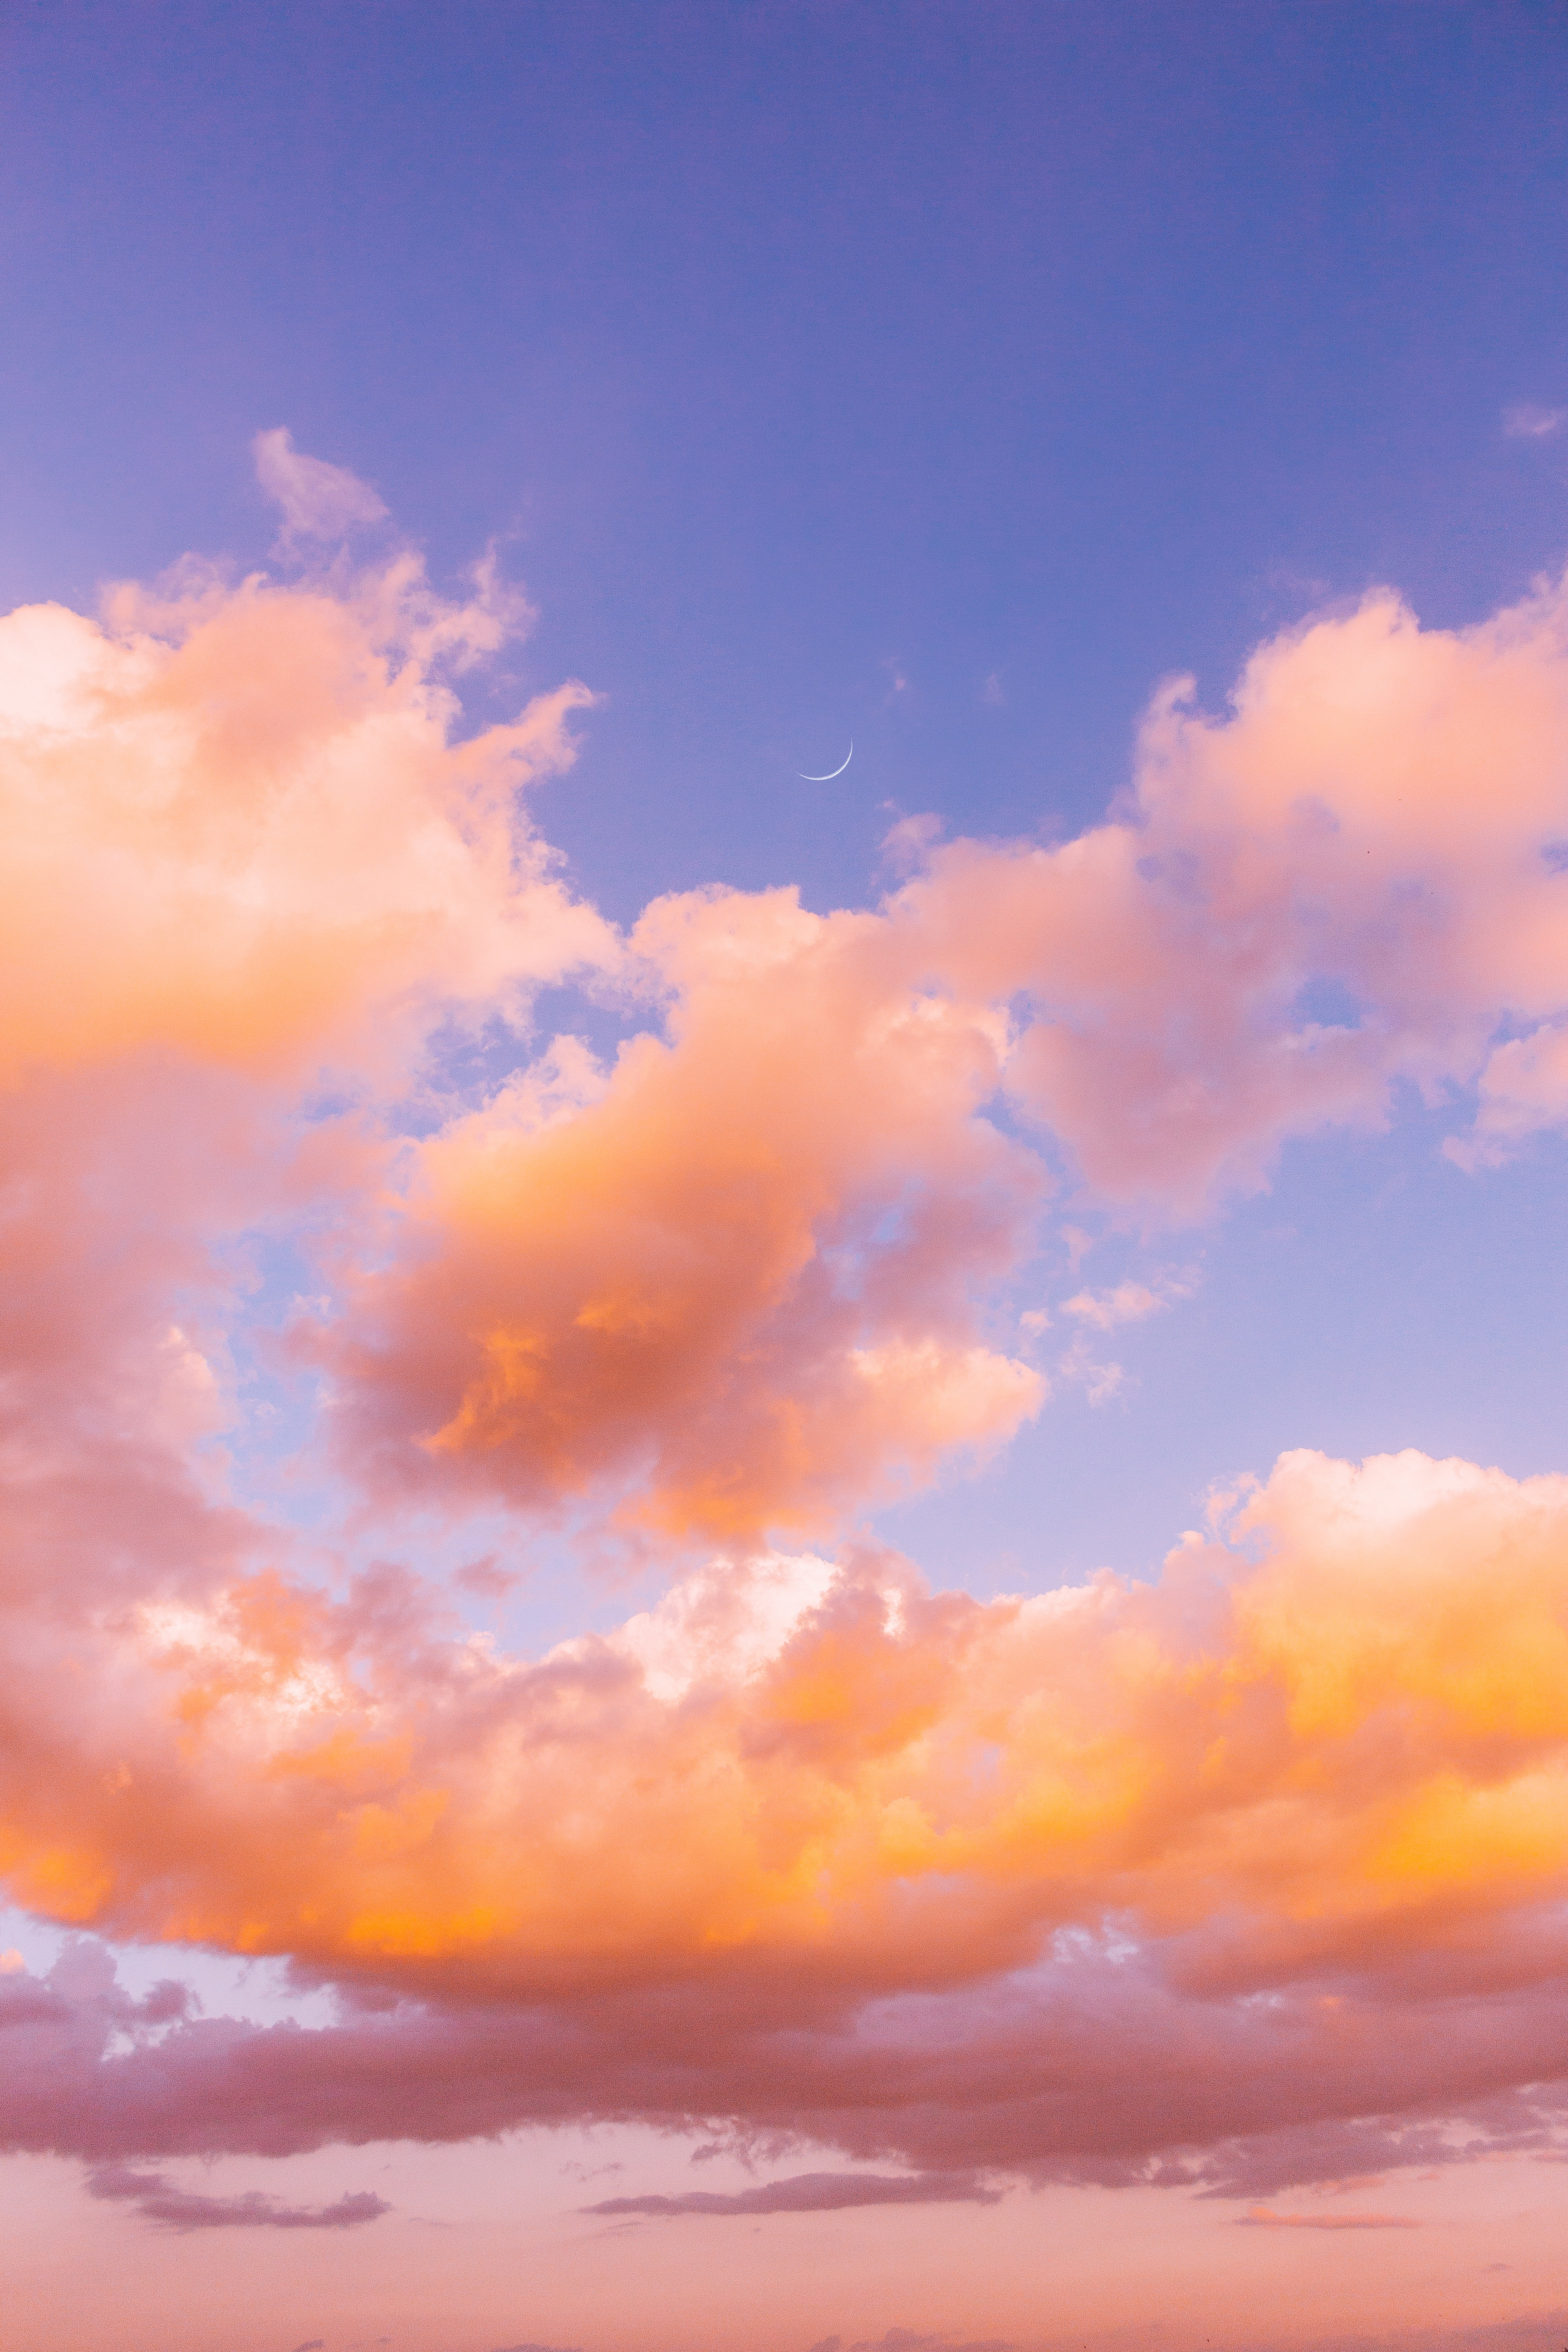 82468 free wallpaper 1080x2400 for phone, download images Nature, Sky, Clouds, Porous 1080x2400 for mobile